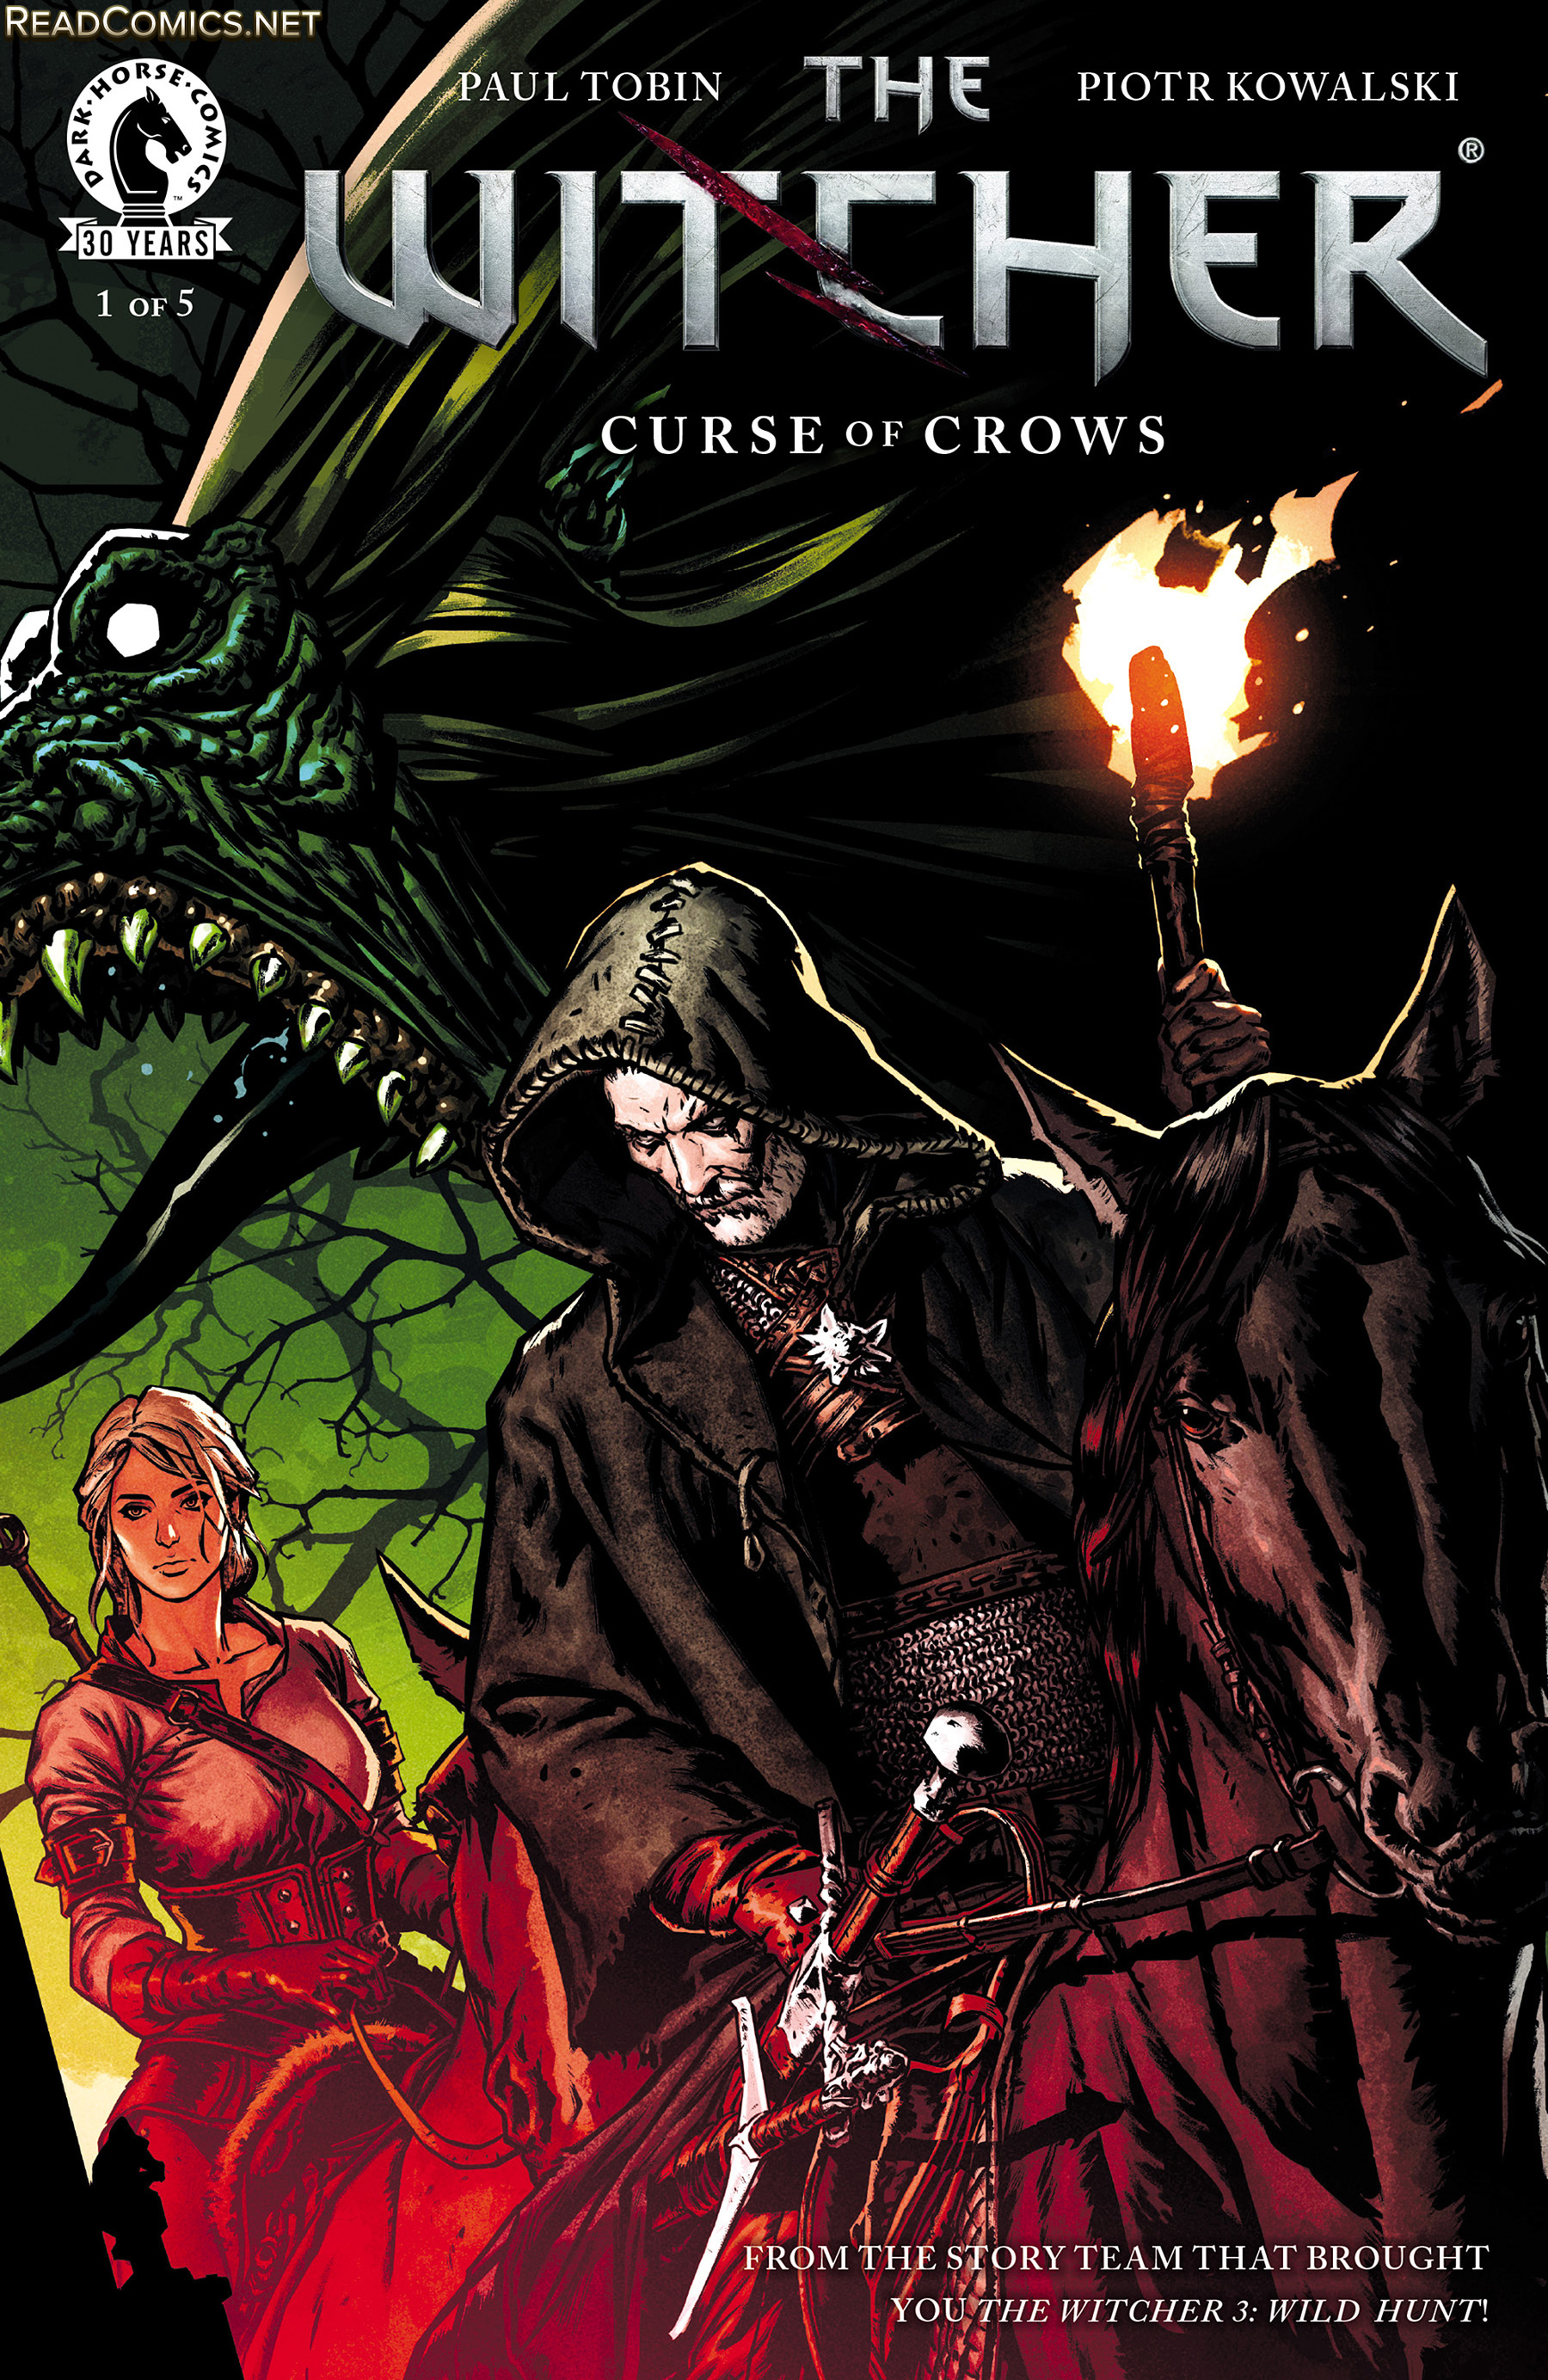 The witcher curse of the crows made by dark horse comics